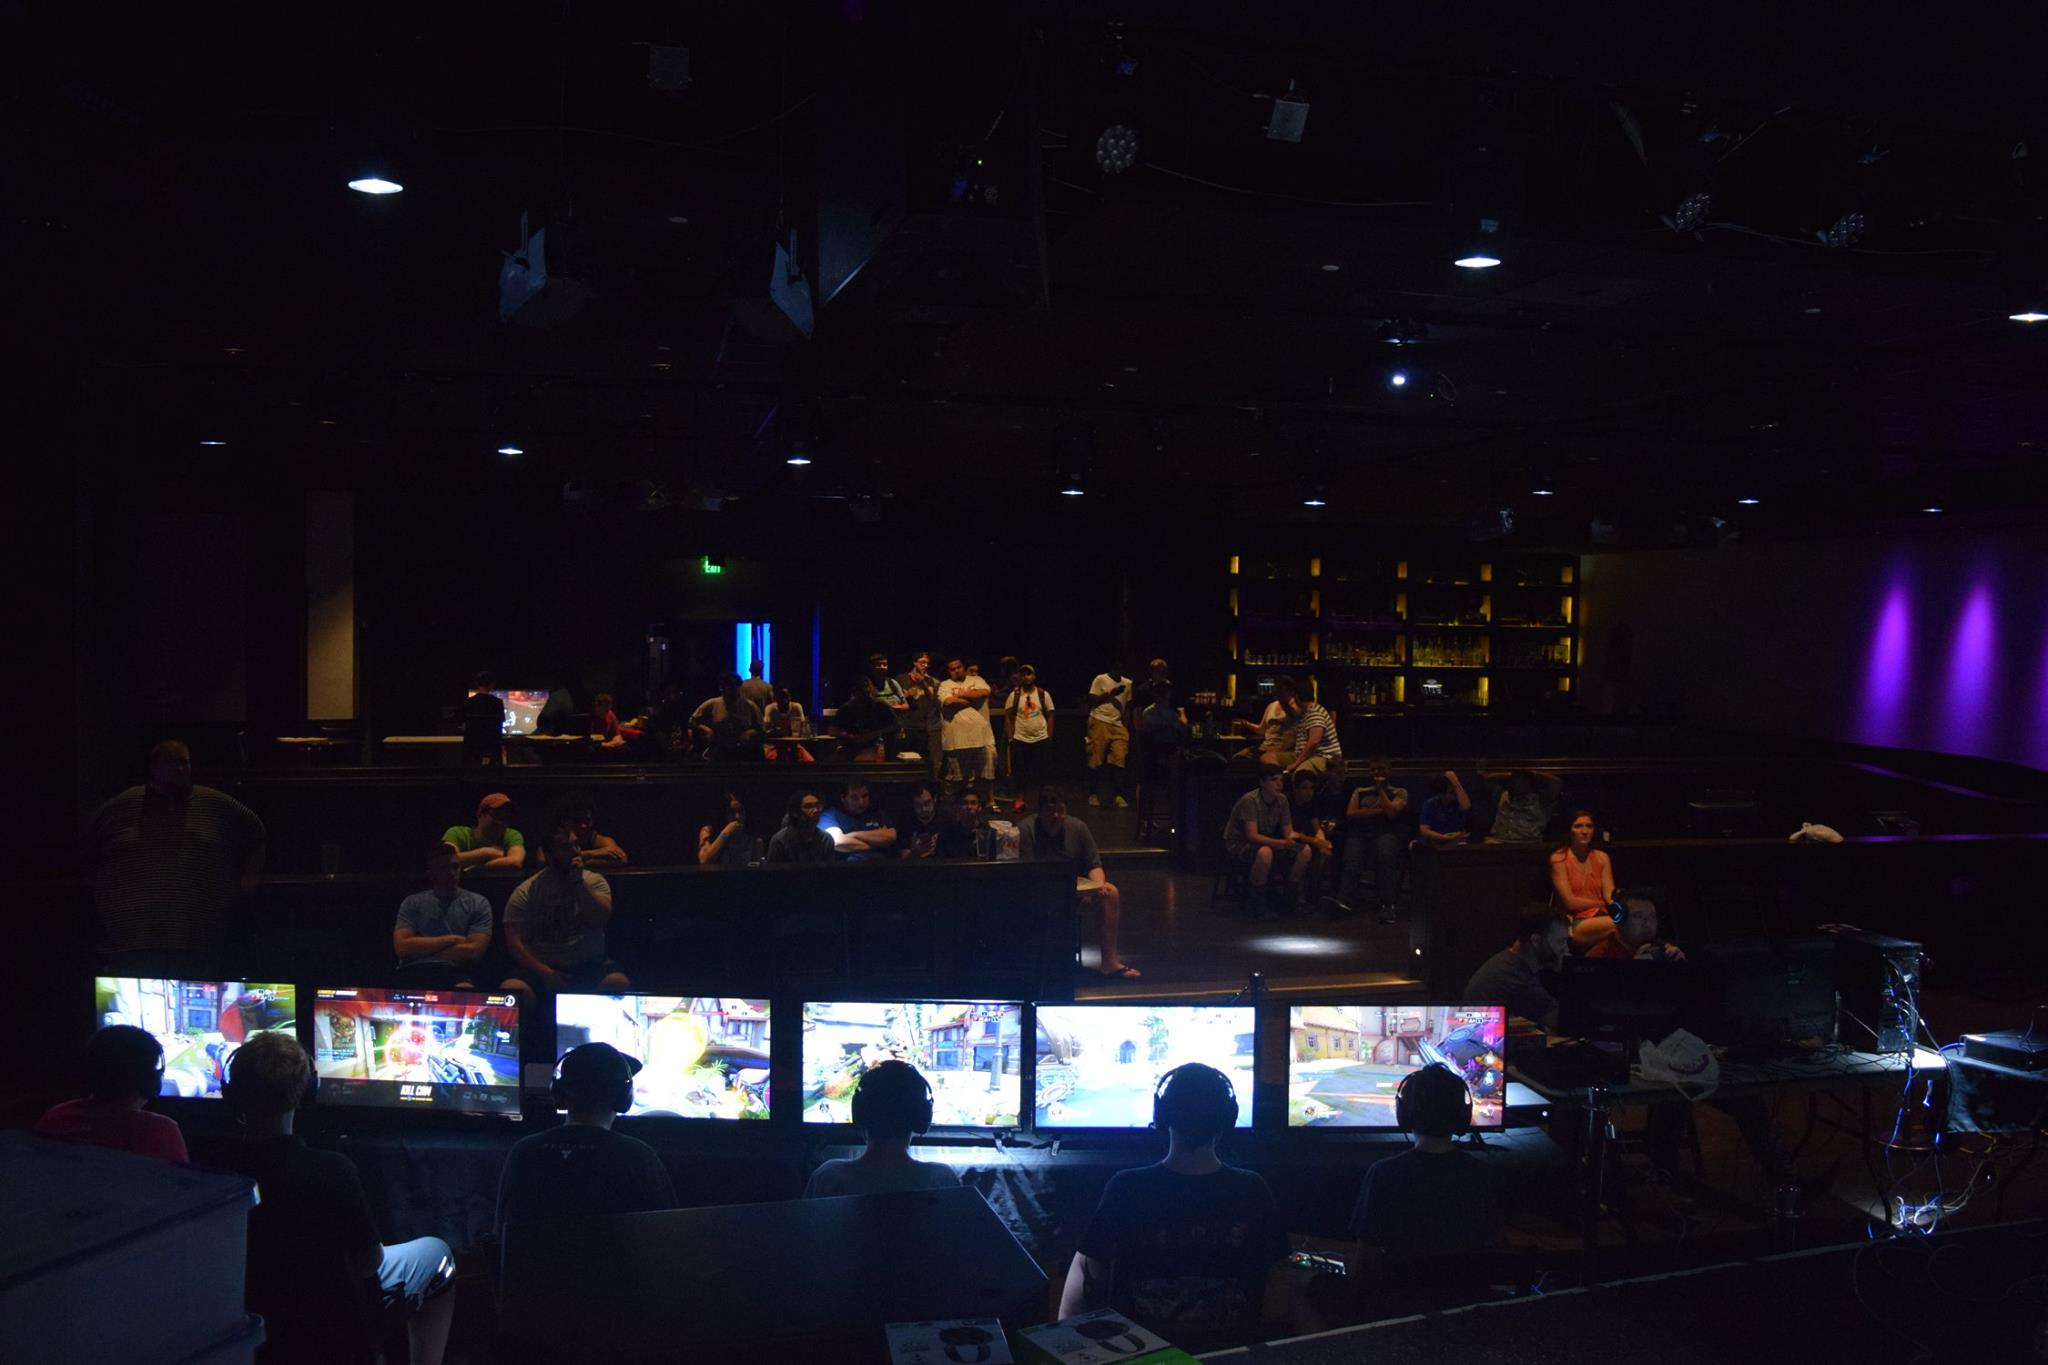 ClaimtoFameEntertainment-esports competitors in dark large room